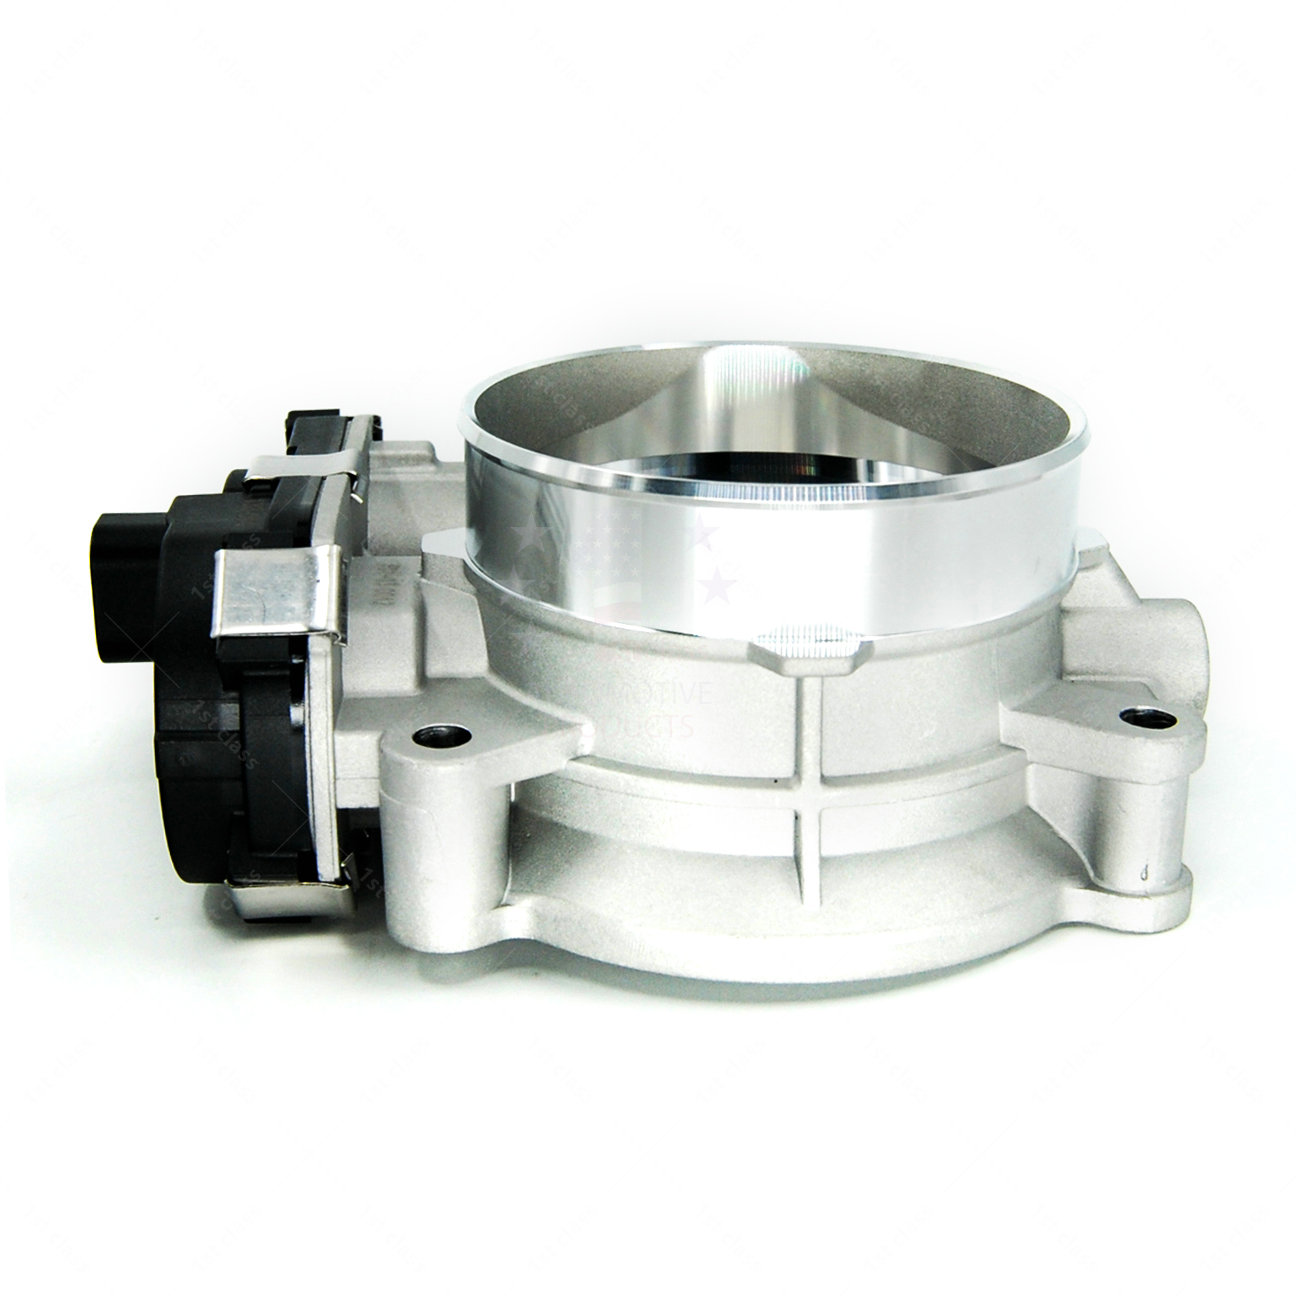 NEW THROTTLE BODY /& ACTUATOR ASSEMBLY FOR CHEVY GMC TRUCK SUV VAN